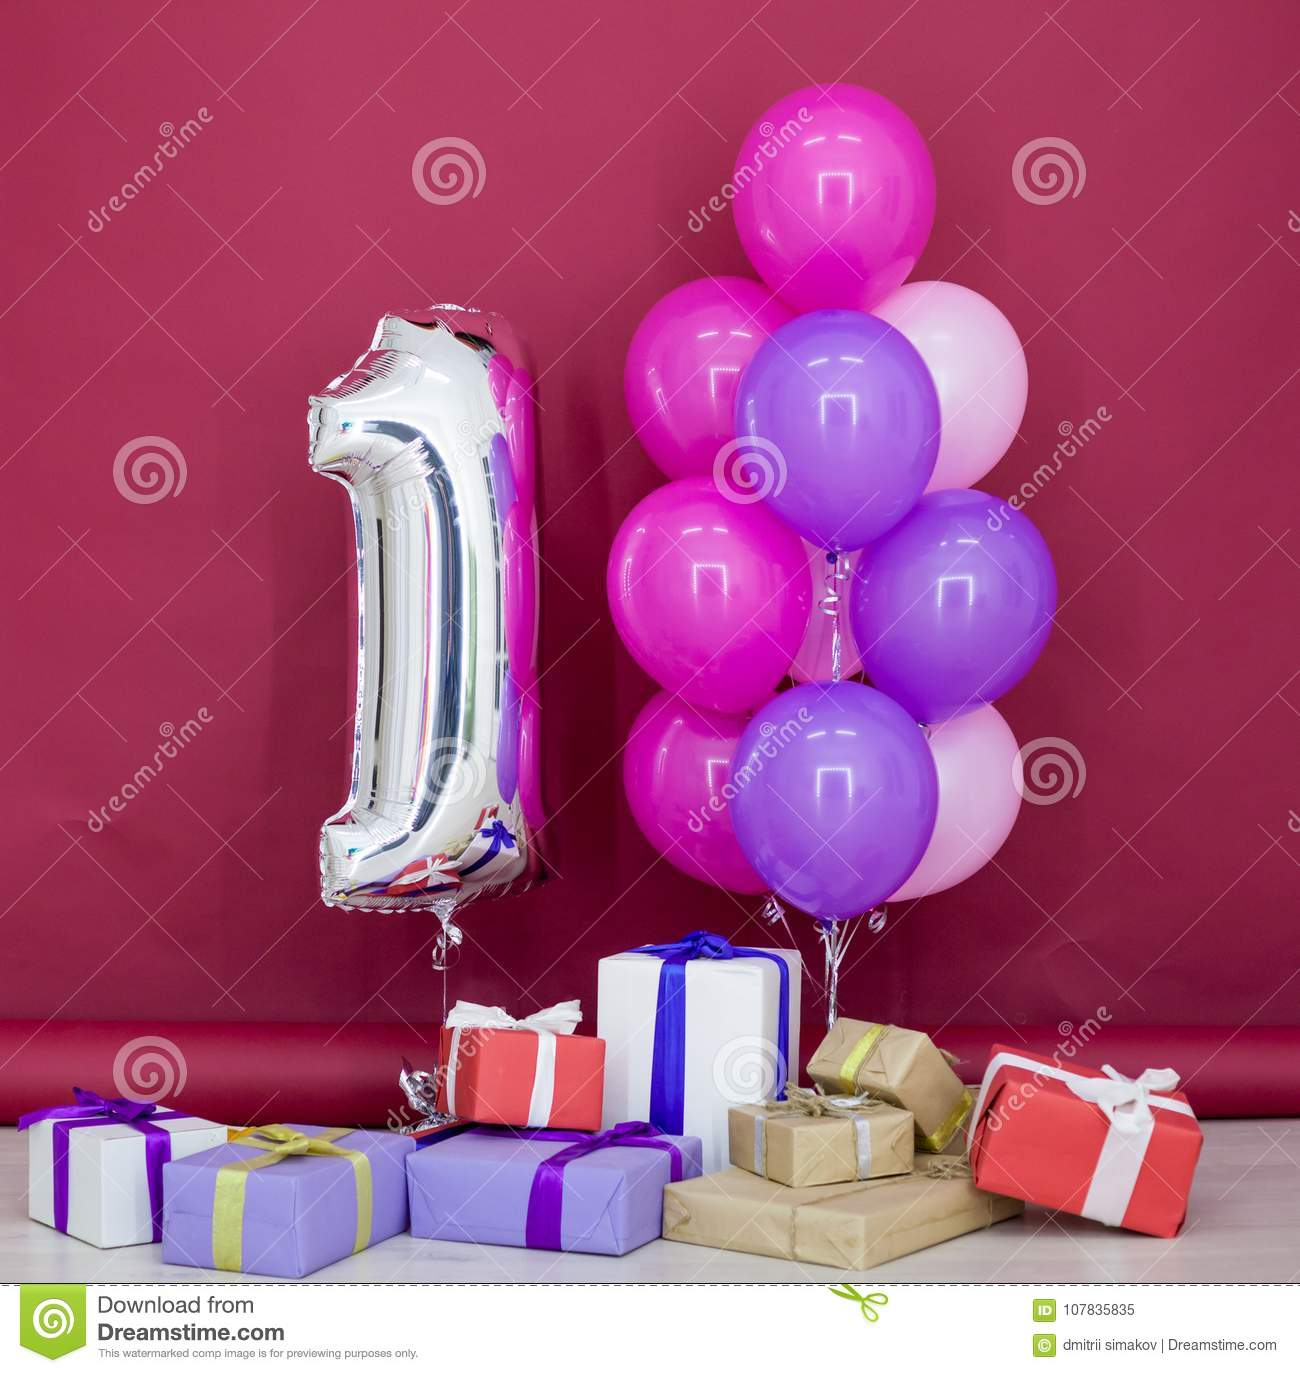 Balloons Of Different Colors With Gifts For Her Birthday